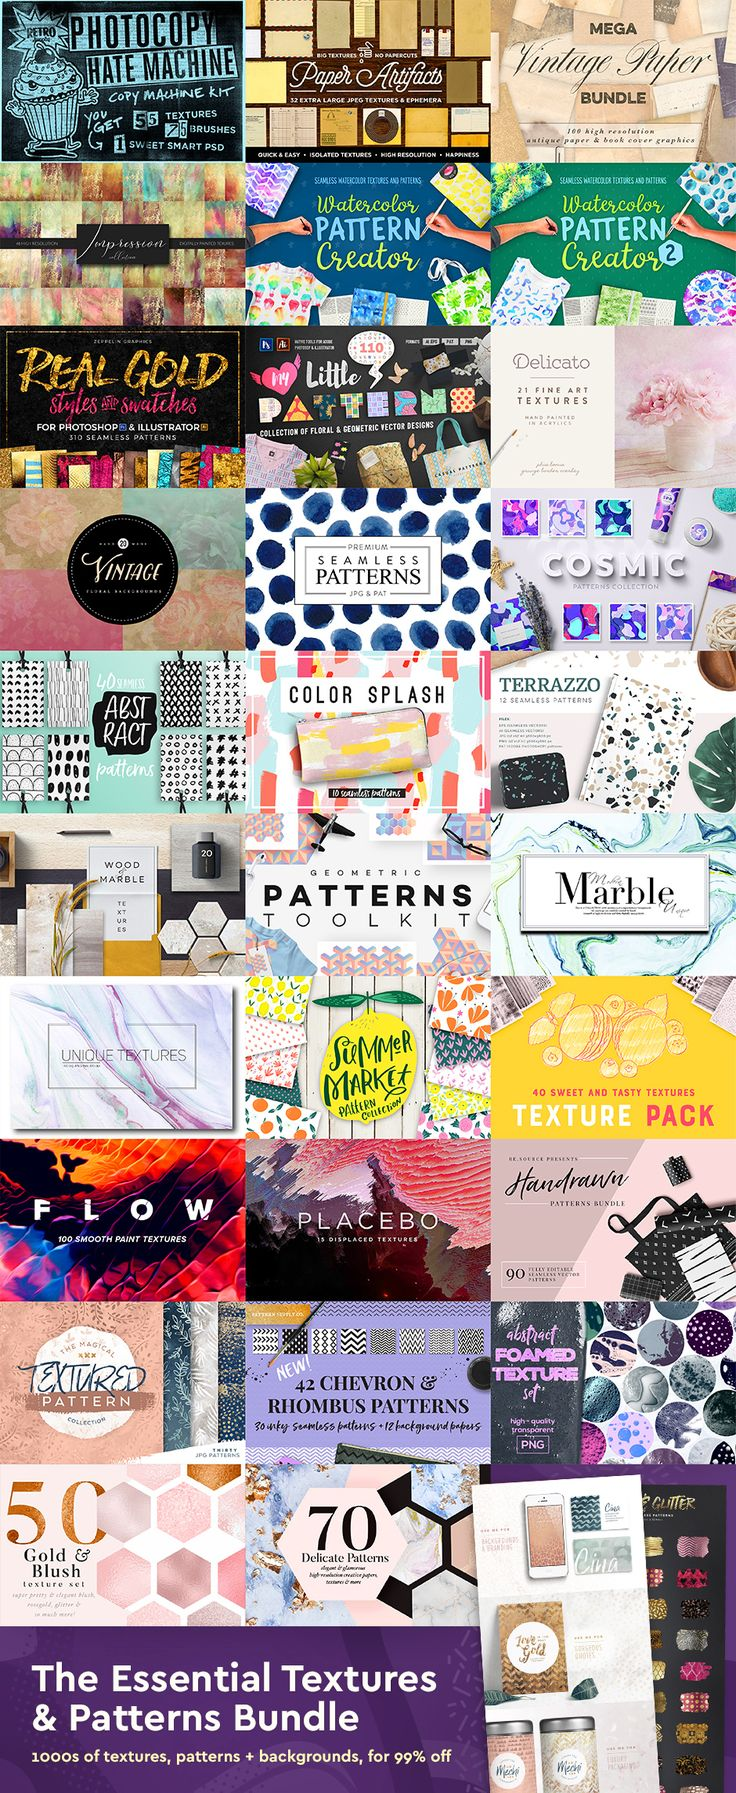 The Essential Textures & Patterns Bundle contains SO MANY beautiful textures and patterns for ALL of your design needs. I am sooo getting this before it's gone!